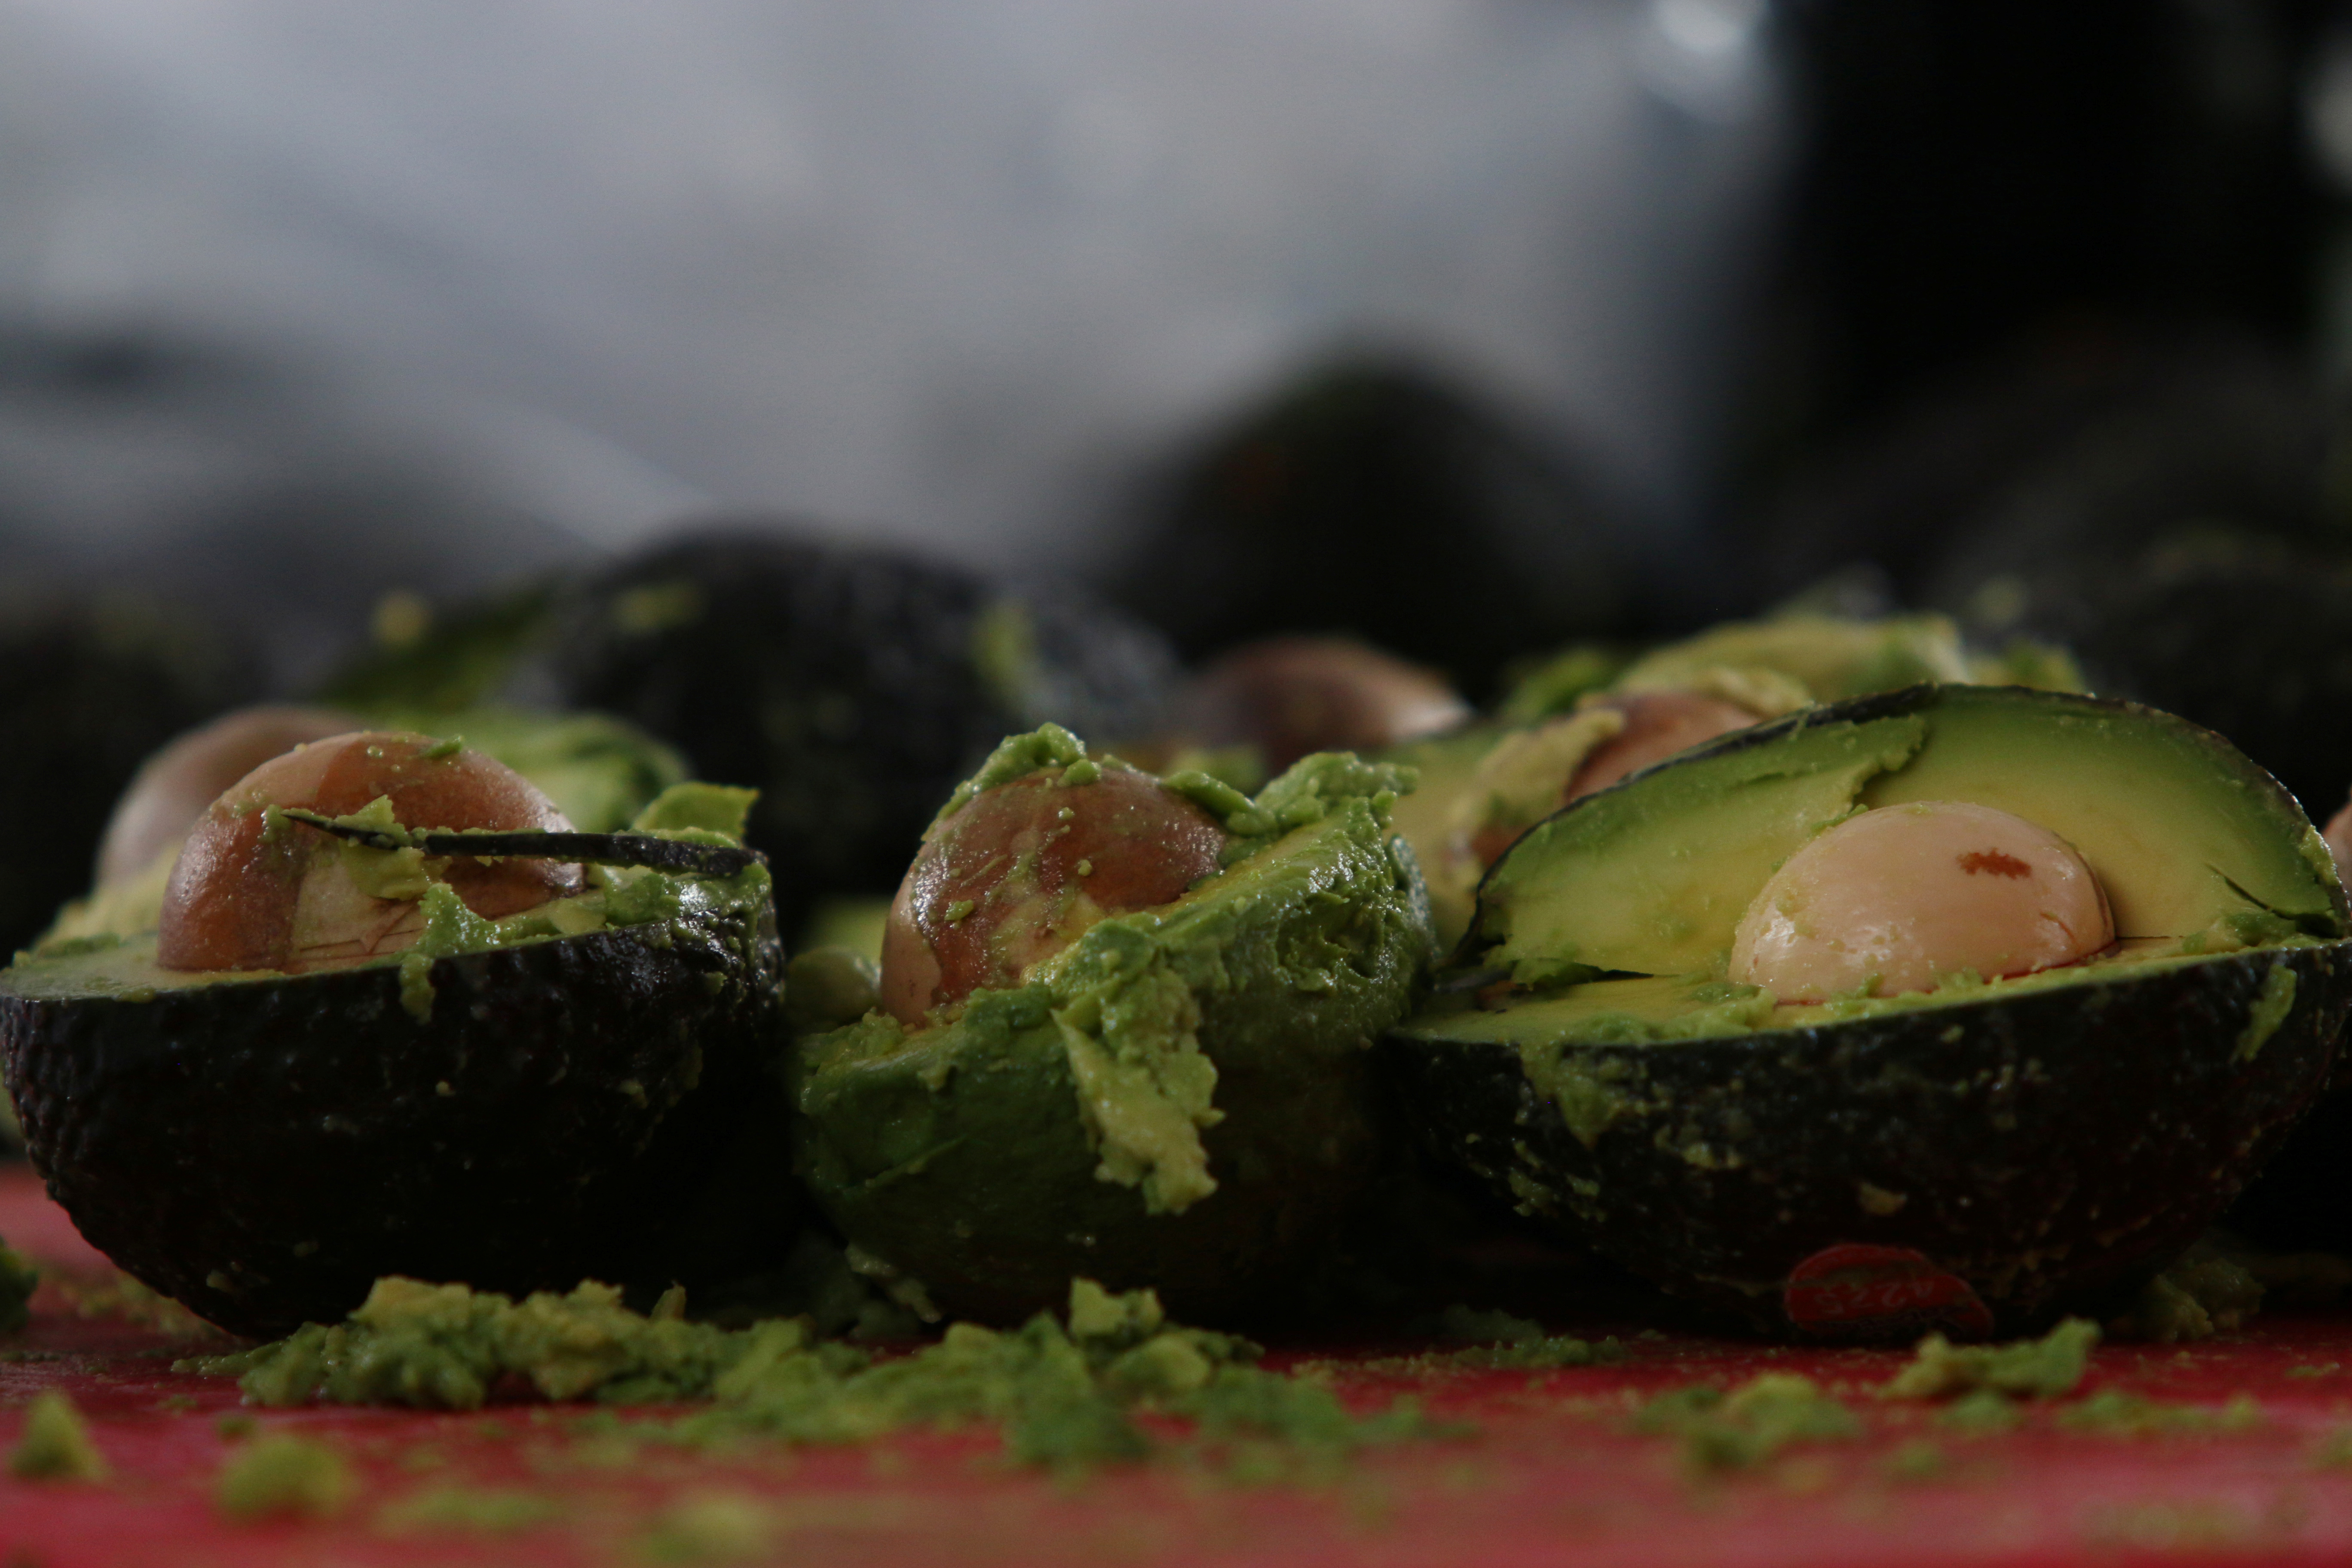 Avocados are pictured as volunteers from a culinary school attempt to set a new Guinness World Record for the largest serving of guacamole in Concepcion de Buenos Aires, Jalisco, Mexico September 3, 2017.